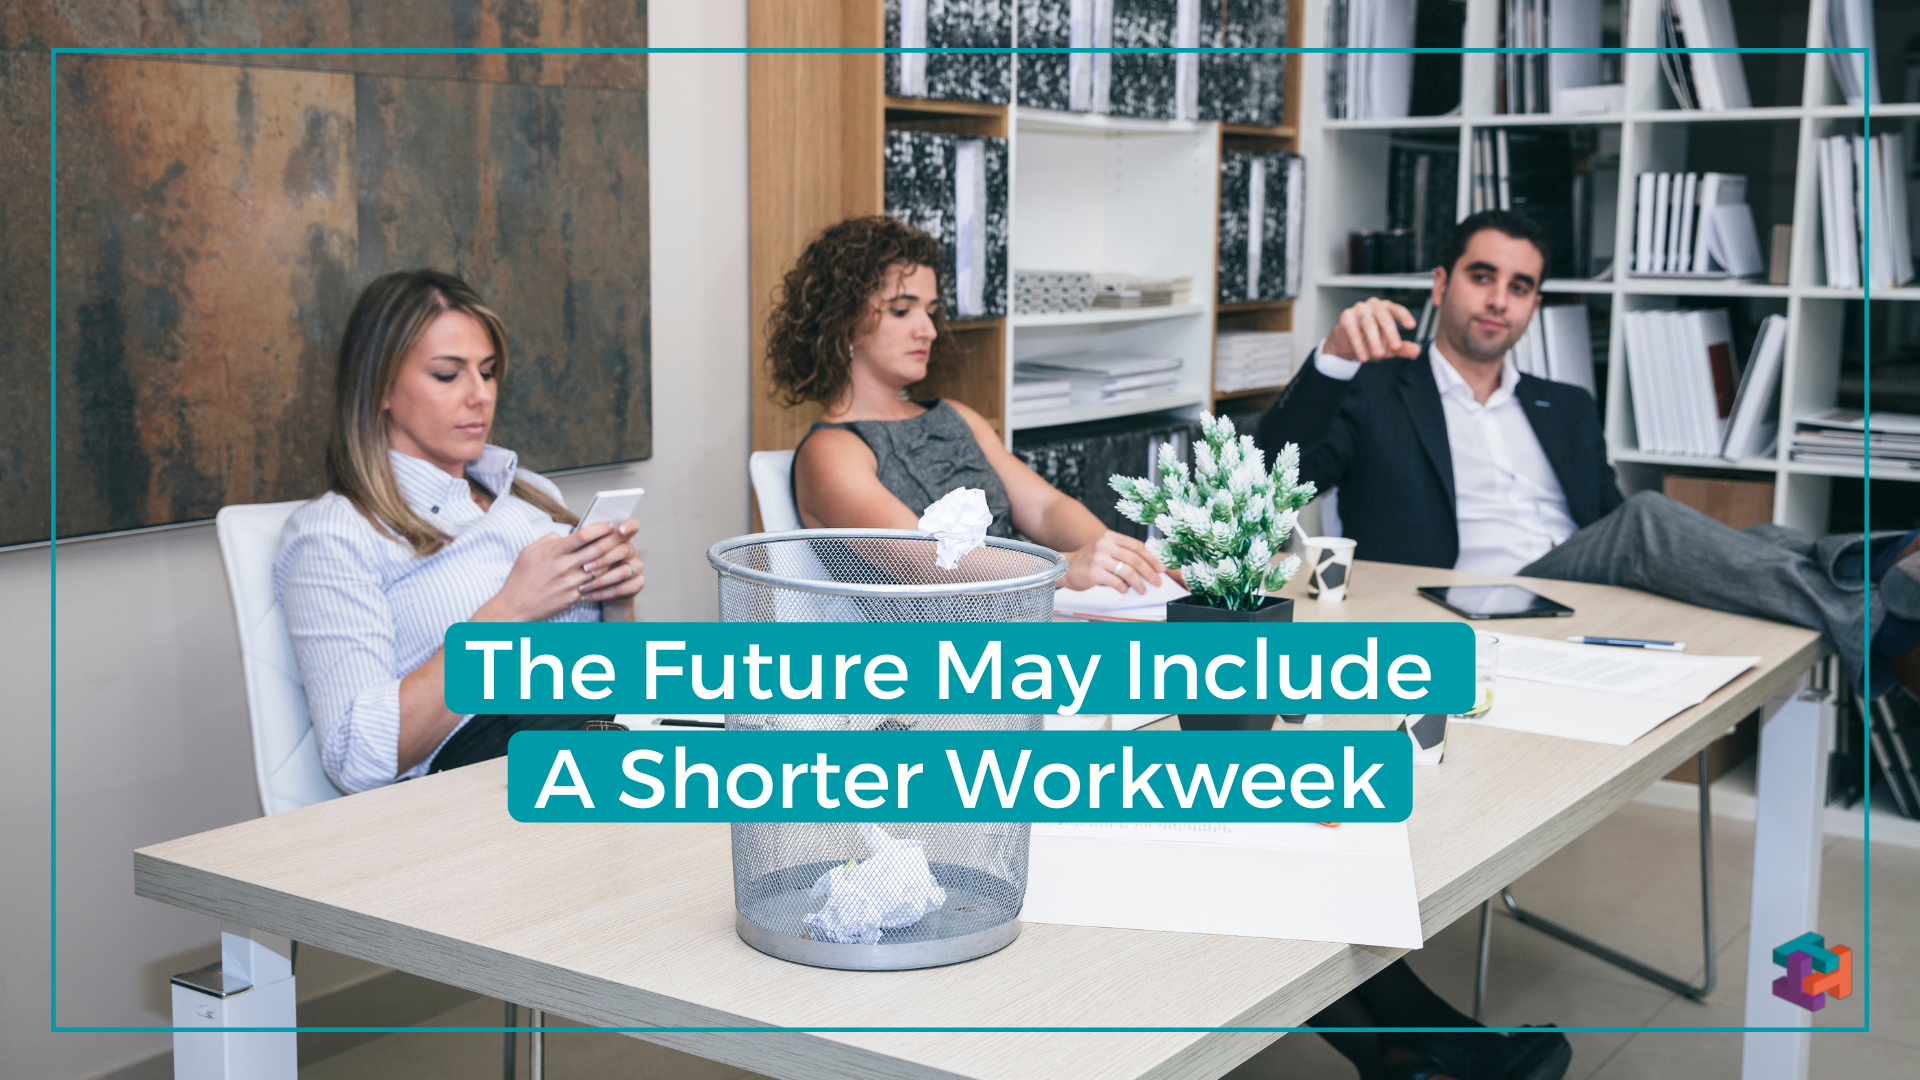 The future may include a shorter workweek